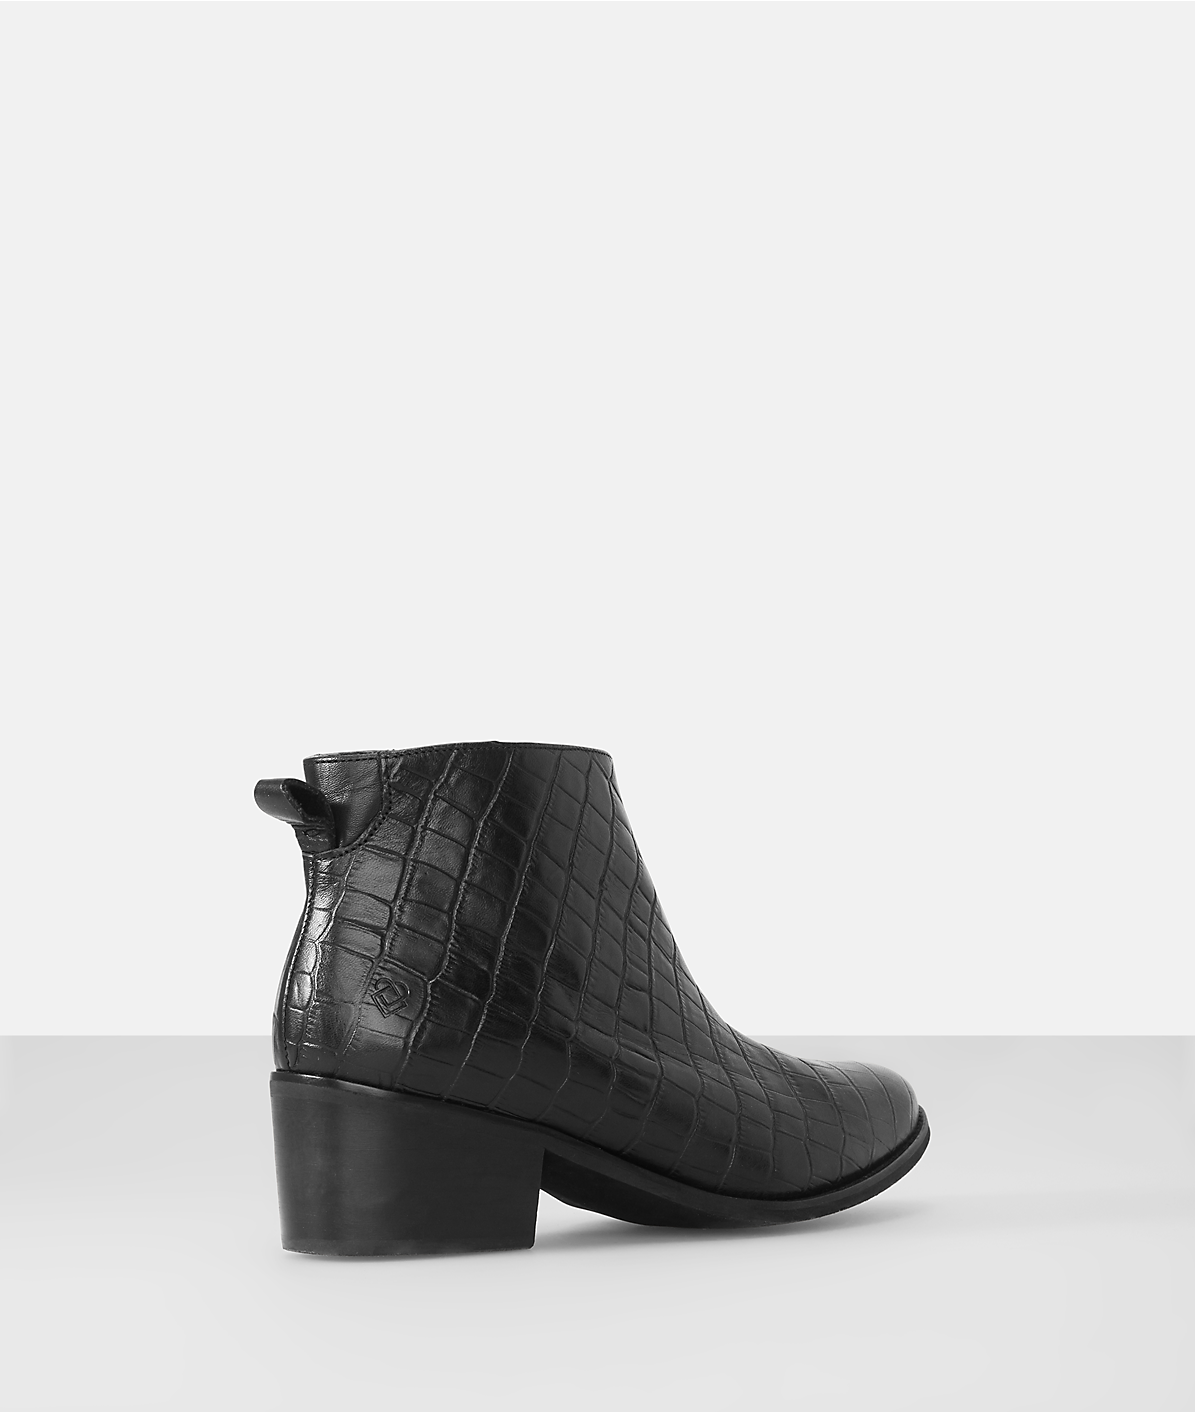 Ankle boots LF175090R from liebeskind